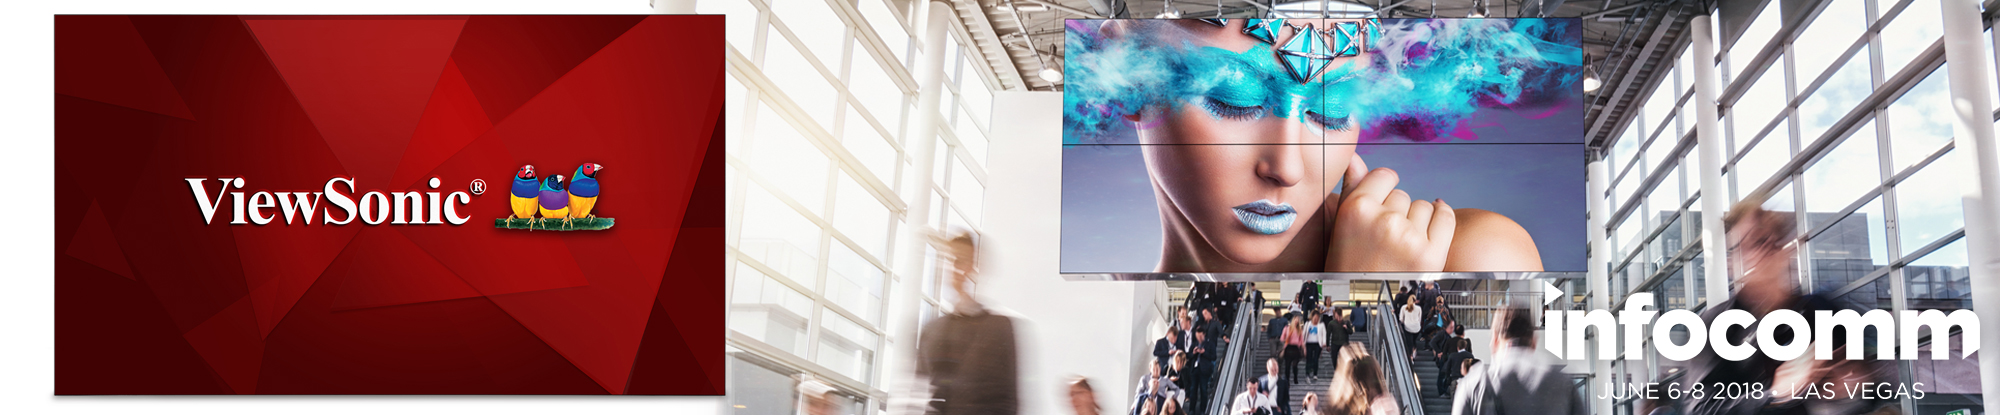 ViewSonic Ships 55-inch Commercial Display with Super Narrow Bezel for Nearly Seamless, High-Impact Video Wall Applications